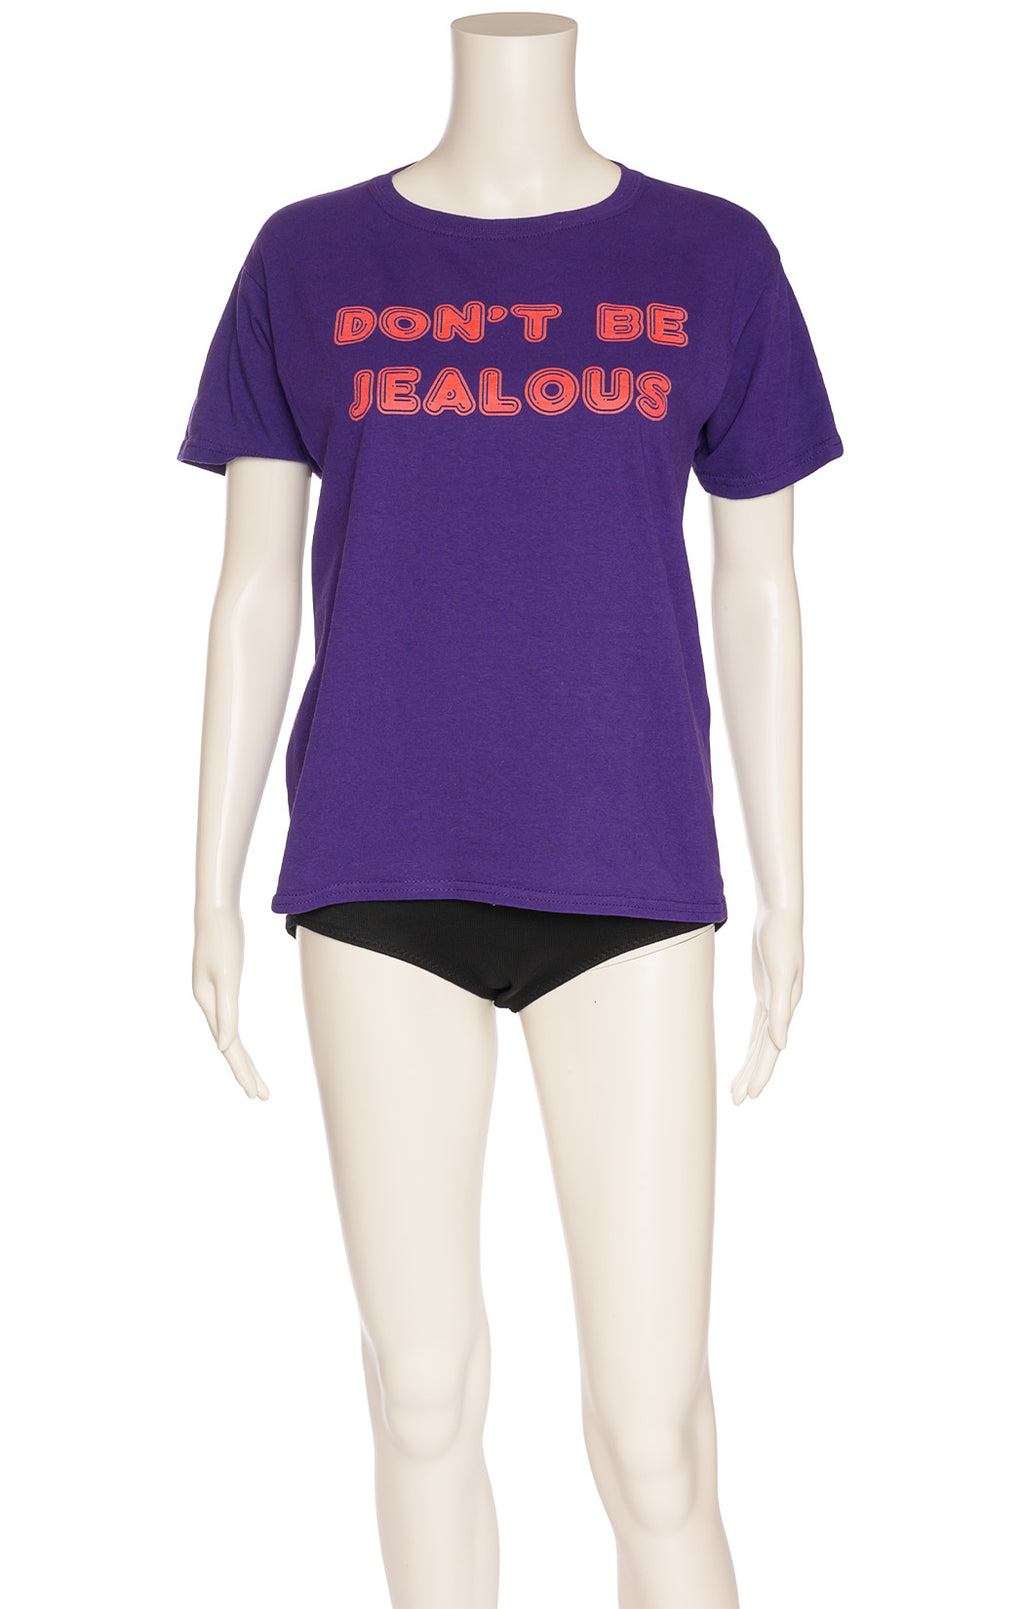 Purple with red writing short sleeve t-shirt